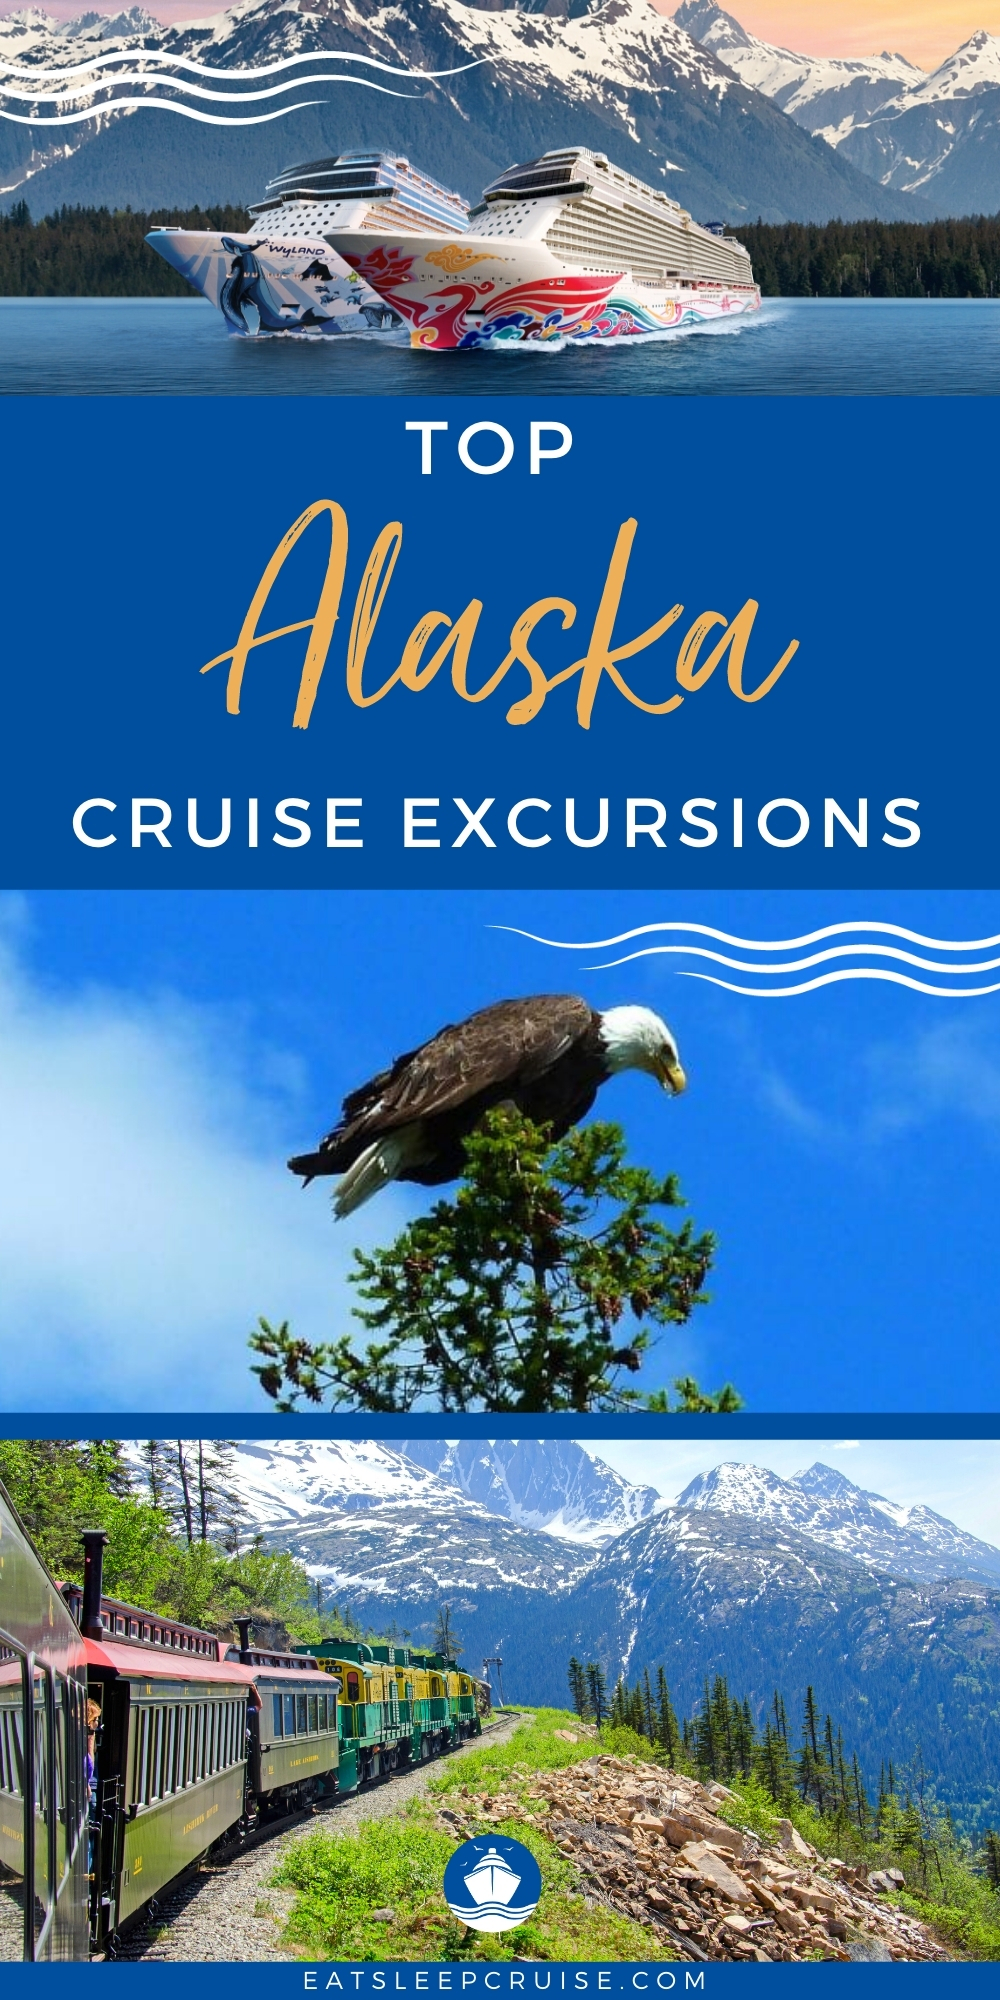 Top Alaska Cruise Excursions